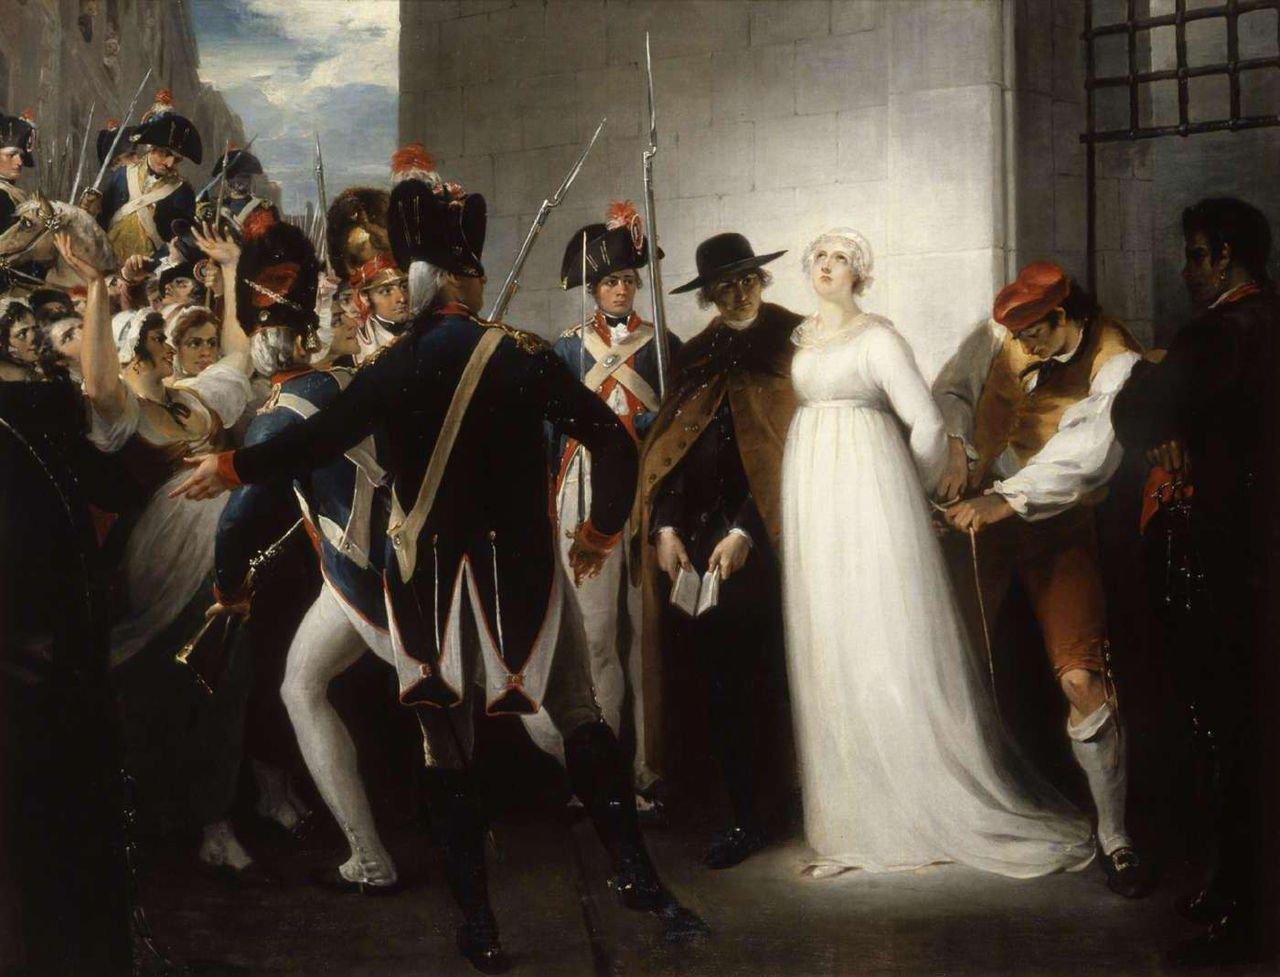 1280px-marie_antoinette_being_taken_to_her_execution_1794